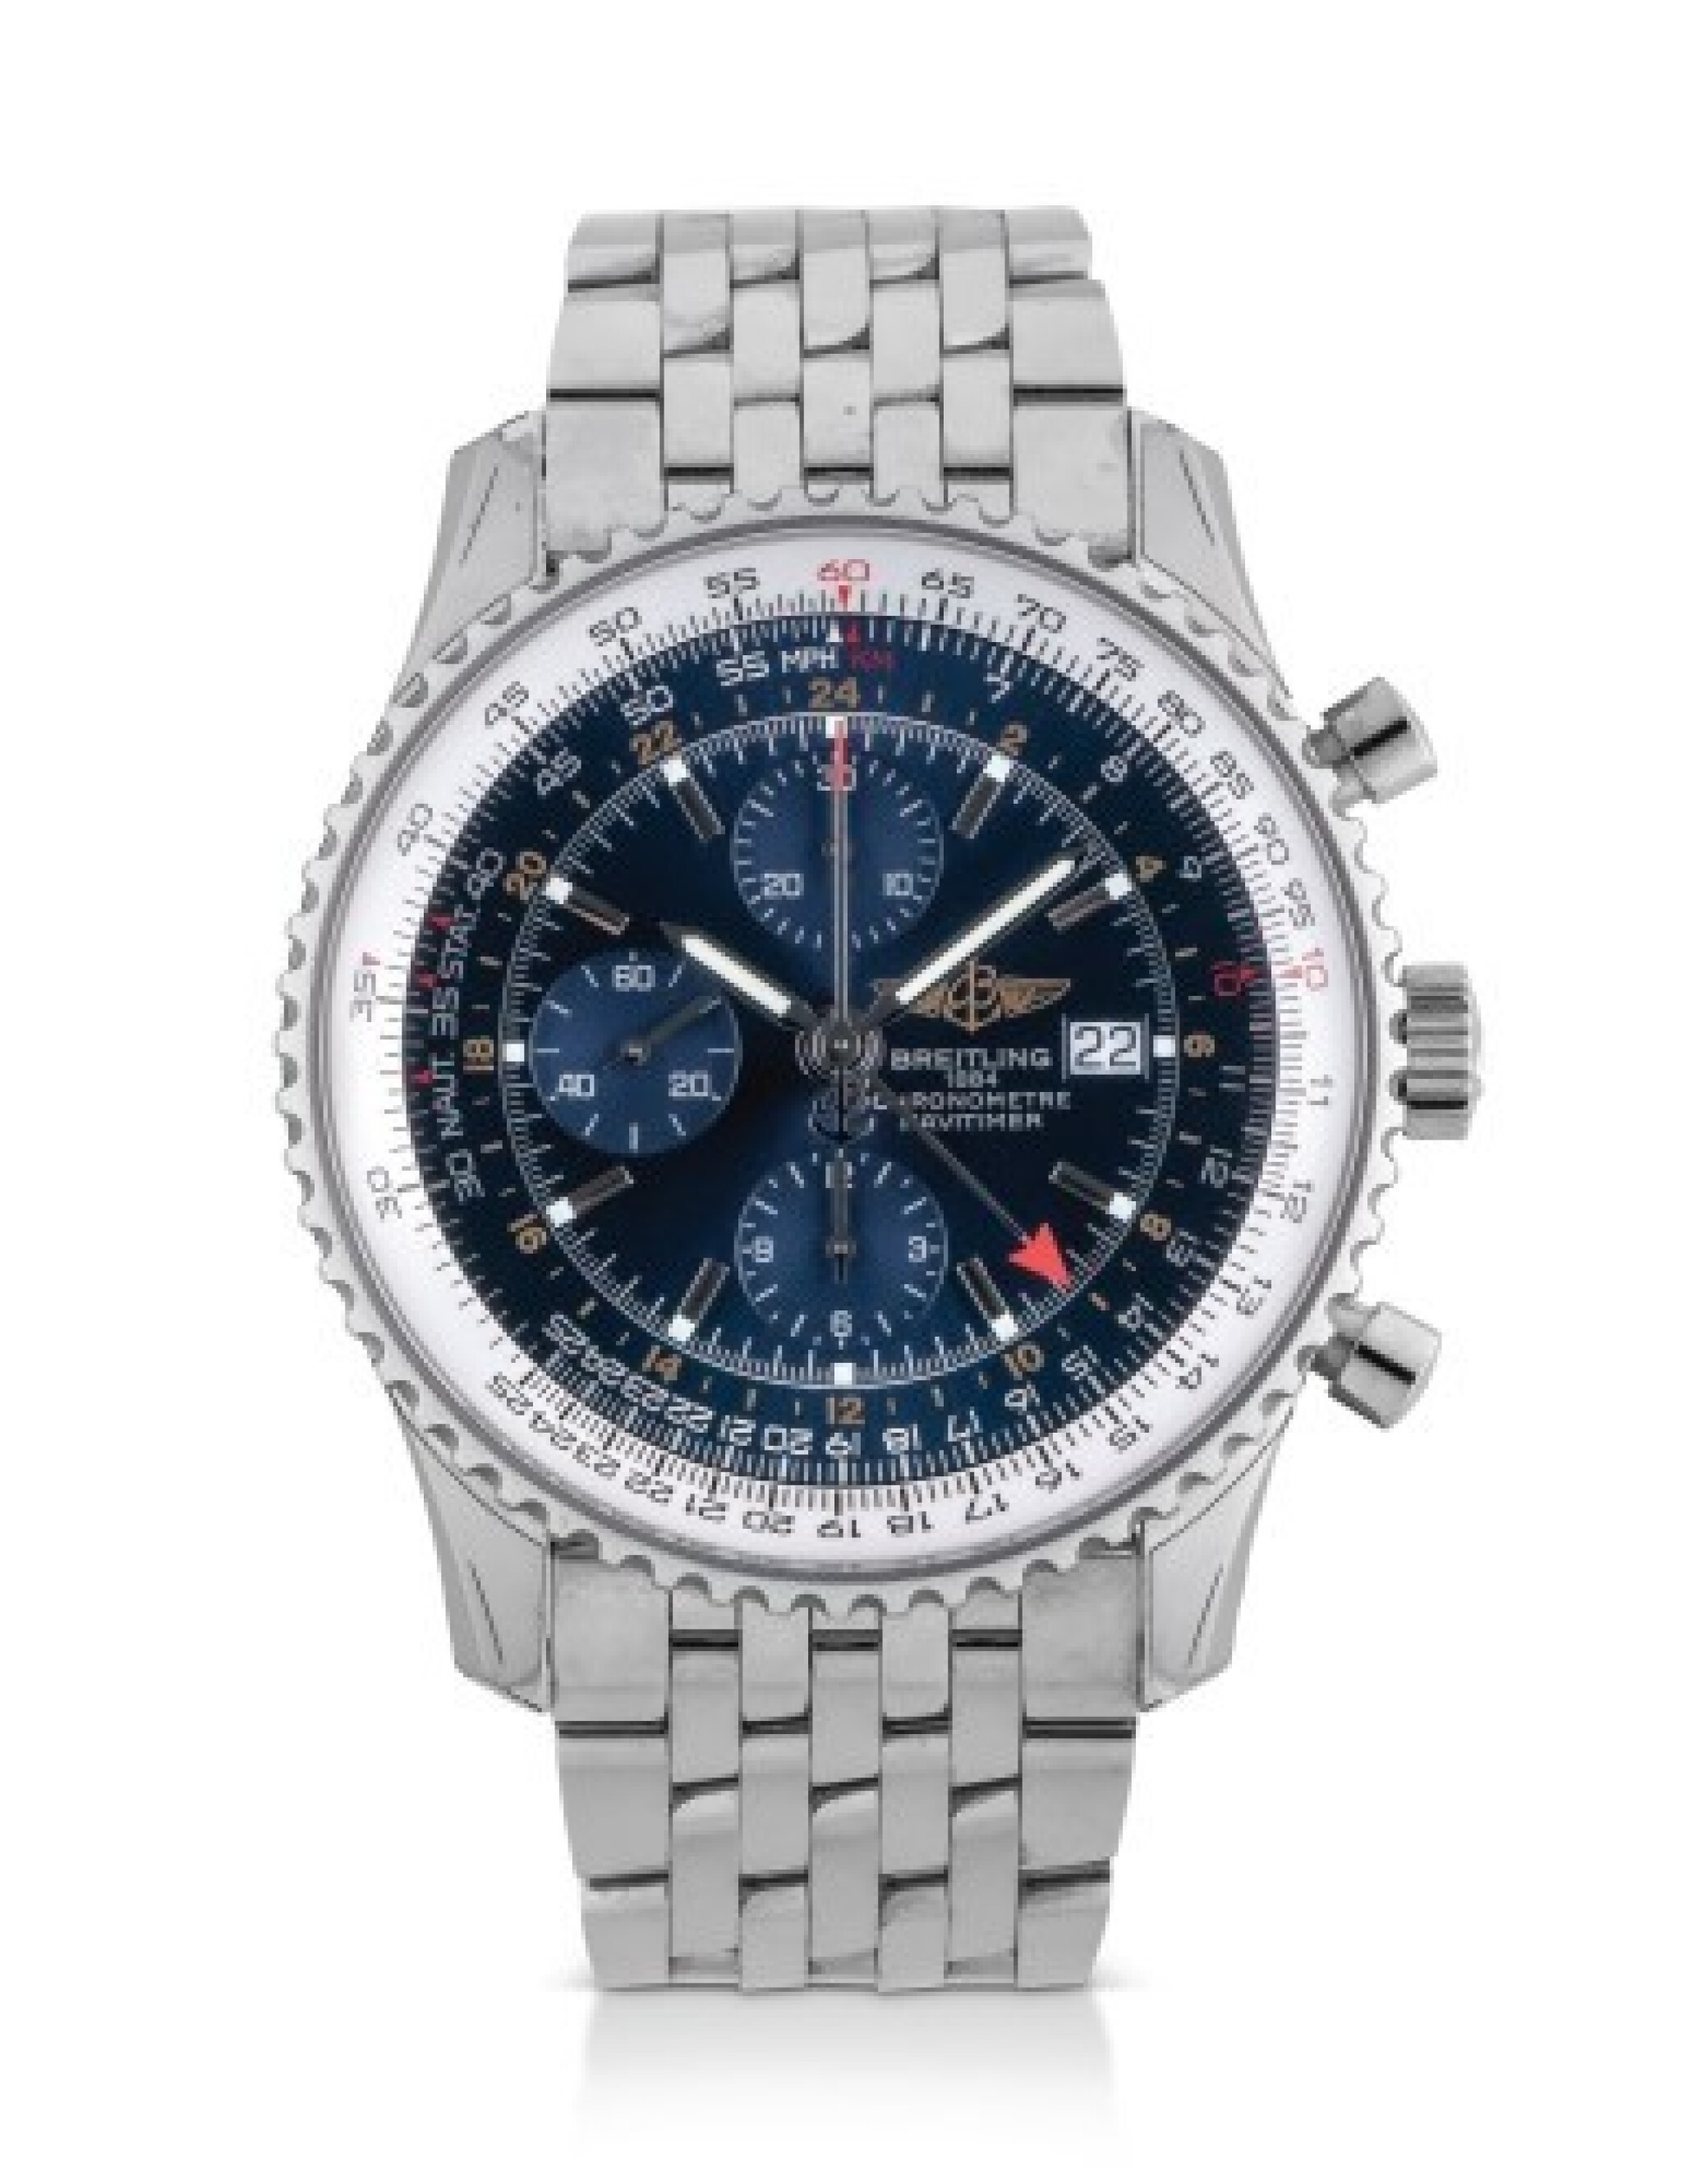 View full screen - View 1 of Lot 11. BREITLING | NAVITIMER, REFERENCE A24322, STAINLESS STEEL DUAL-TIME CHRONOGRAPH WRISTWATCH WITH DATE AND BRACELET, CIRCA 2014.